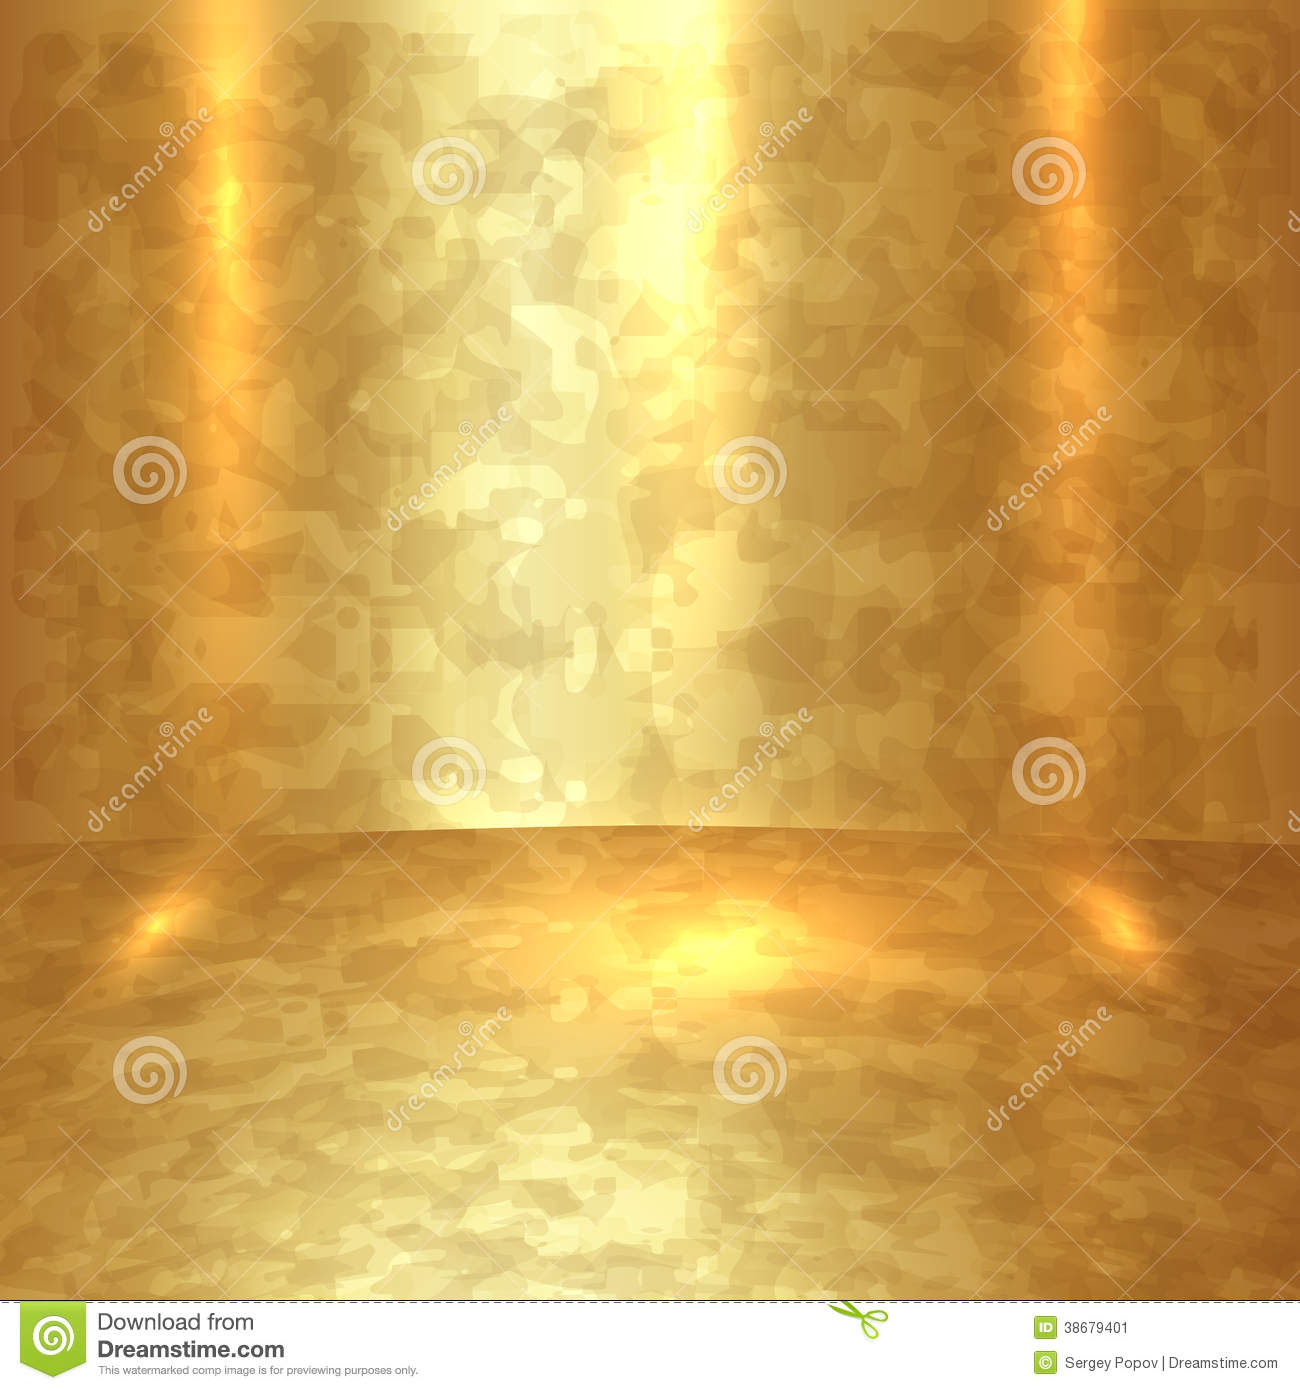 2d Grundrisse Planen moreover How To Use Photoshop For Interior Design additionally Stock Image Vector Abstract Golden Room Gold Floor Walls Box Image38679401 moreover Stock Illustration Happy Cartoon Bar Soap Illustration Wide Smile Image41301259 besides Progettare Casa Online Gratis Programma Per Arredare. on 2d floor plans